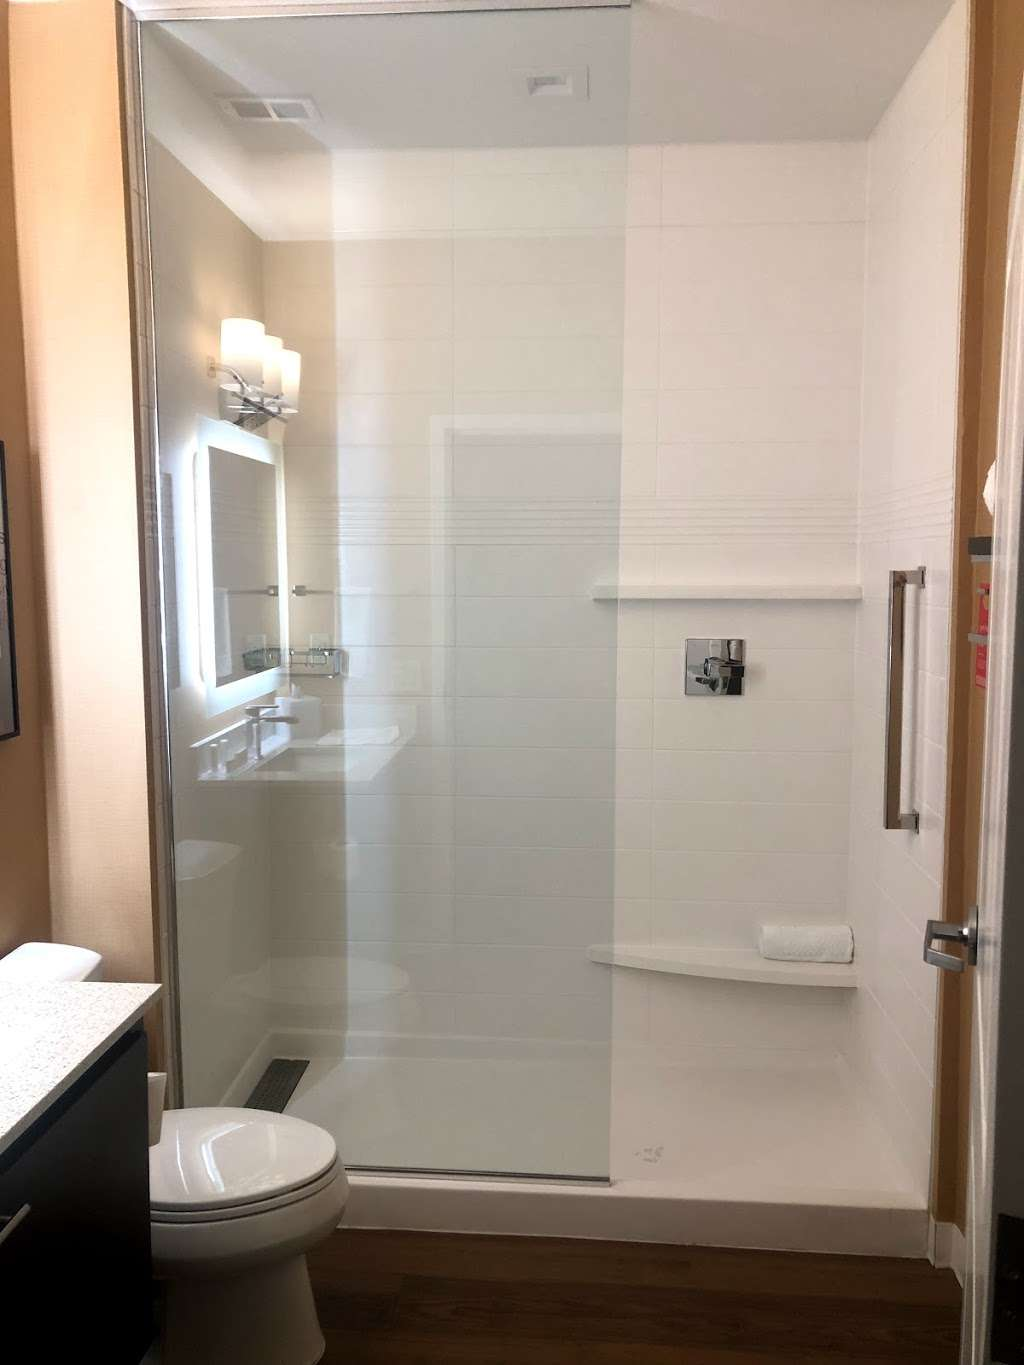 TownePlace Suites by Mariott - lodging  | Photo 3 of 4 | Address: 7238 Garth Rd, Baytown, TX 77521, USA | Phone: (281) 421-0020